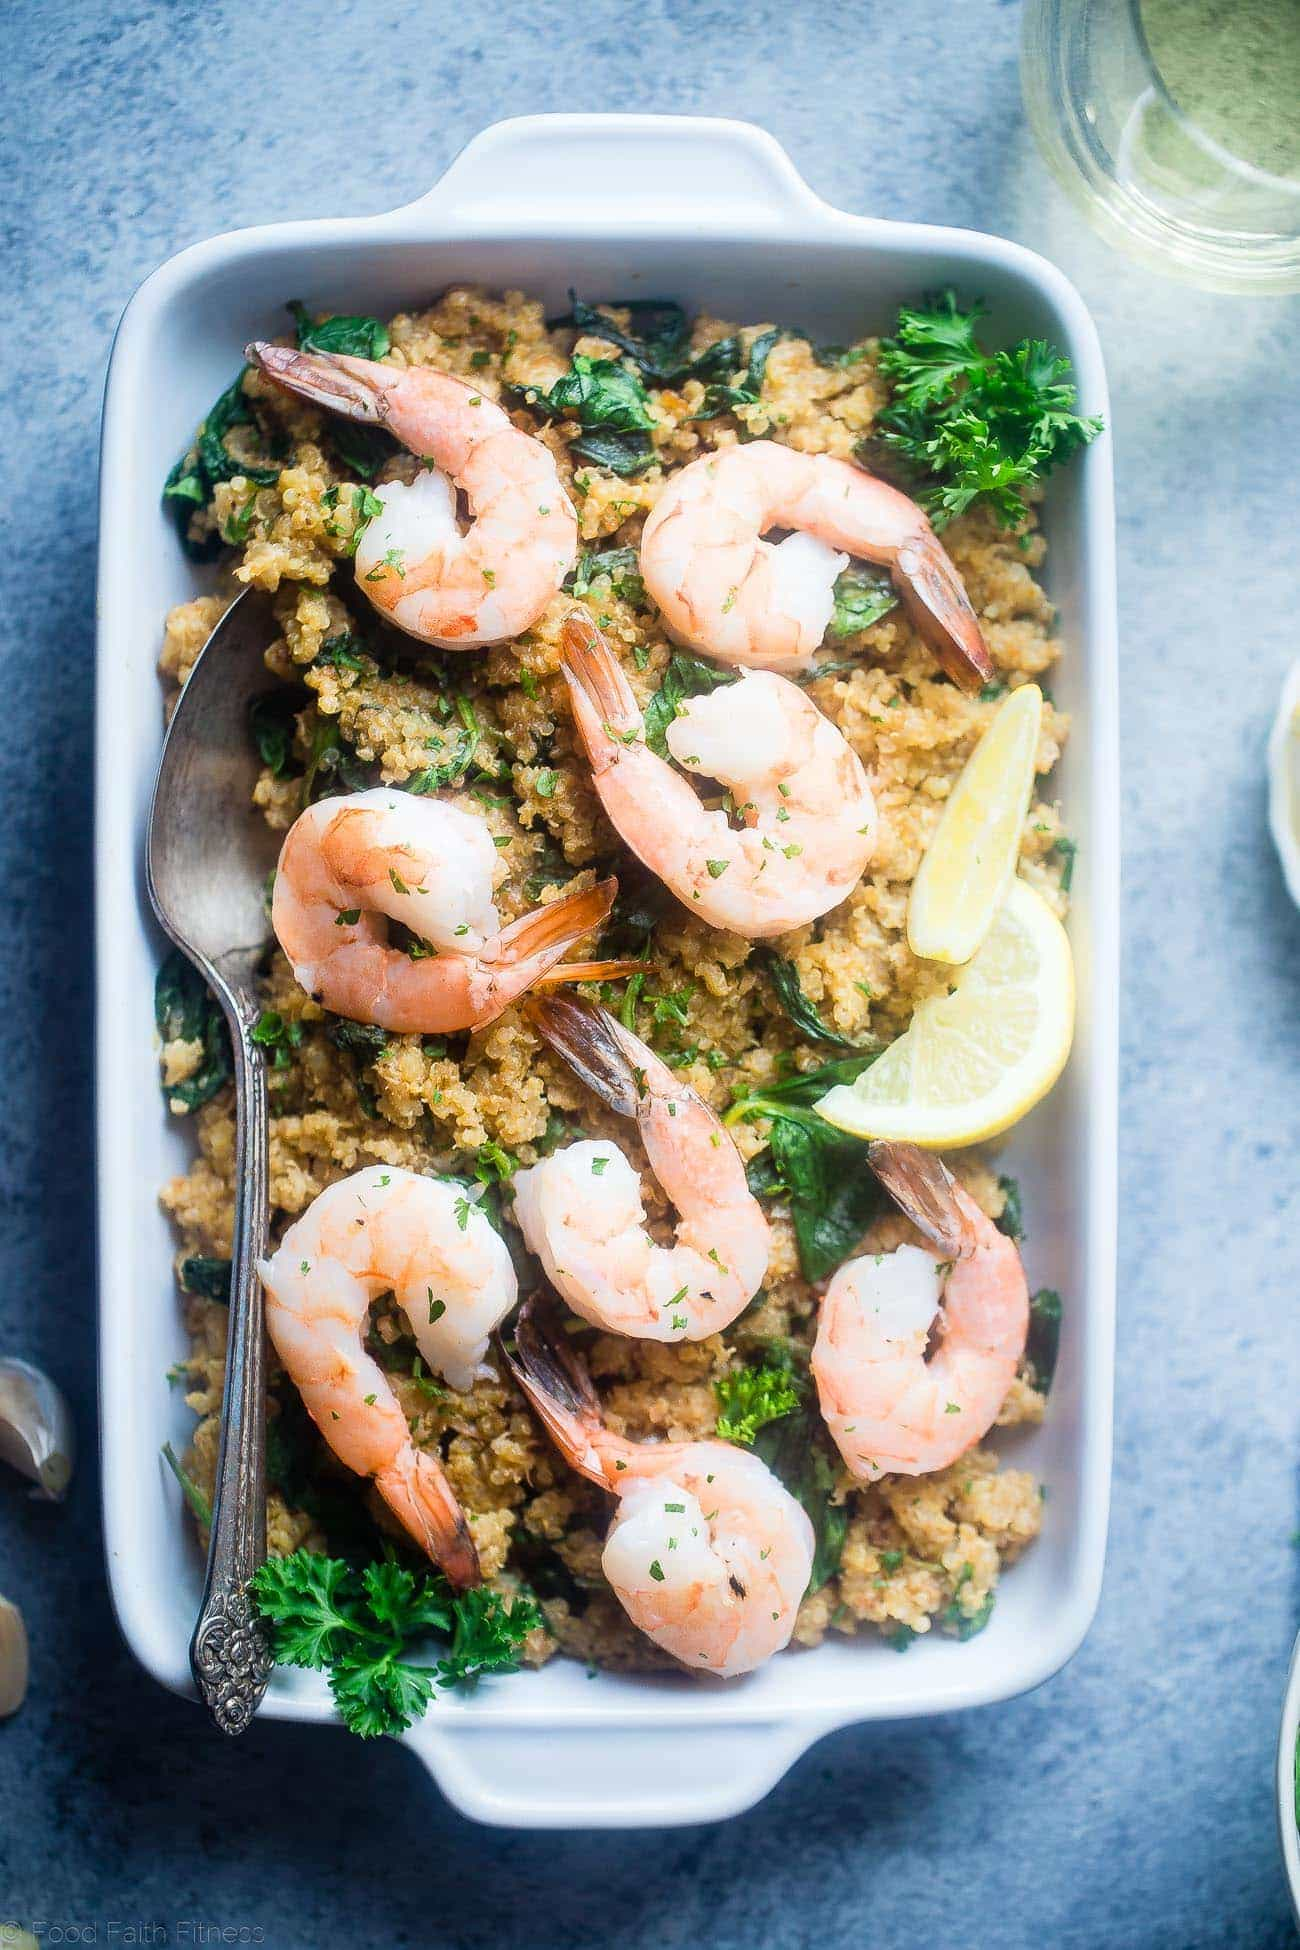 Slow Cooker Garlic Butter Shrimp and Quinoa - This easy, 7 ingredient weeknight dinner is made in the slow cooker! It's a healthy, gluten free meal that the whole family will love! | Foodfaithfitness.com | @FoodFaithFit